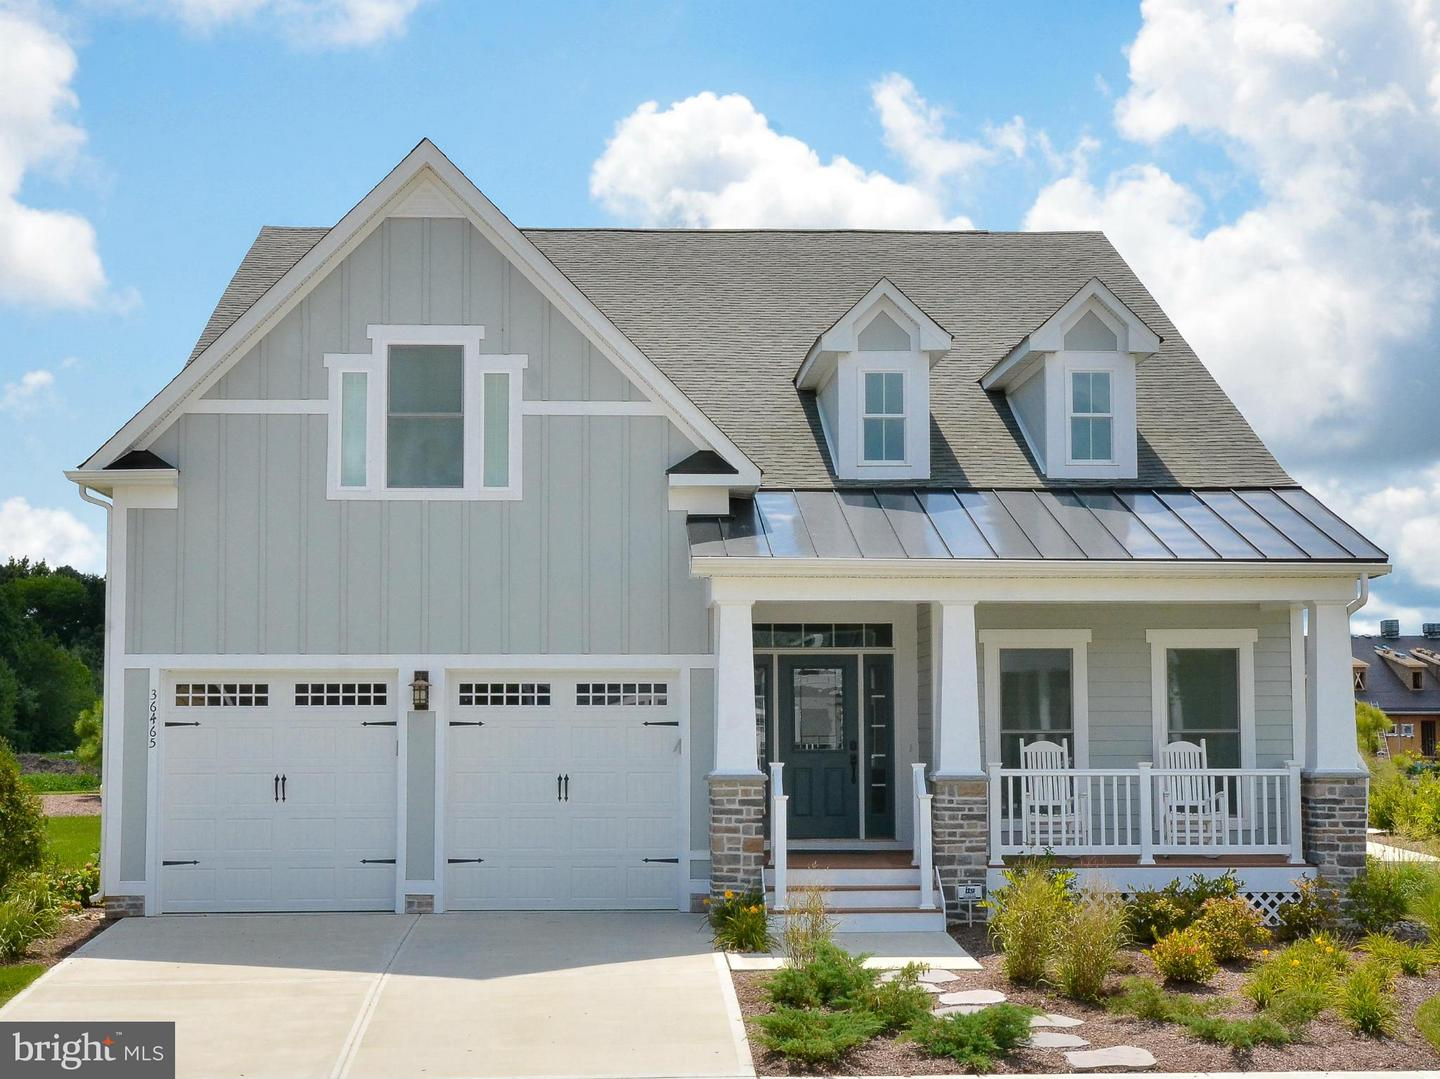 Single Family Home for Sale at 1473 Catbriar Way 1473 Catbriar Way Odenton, Maryland 21113 United States